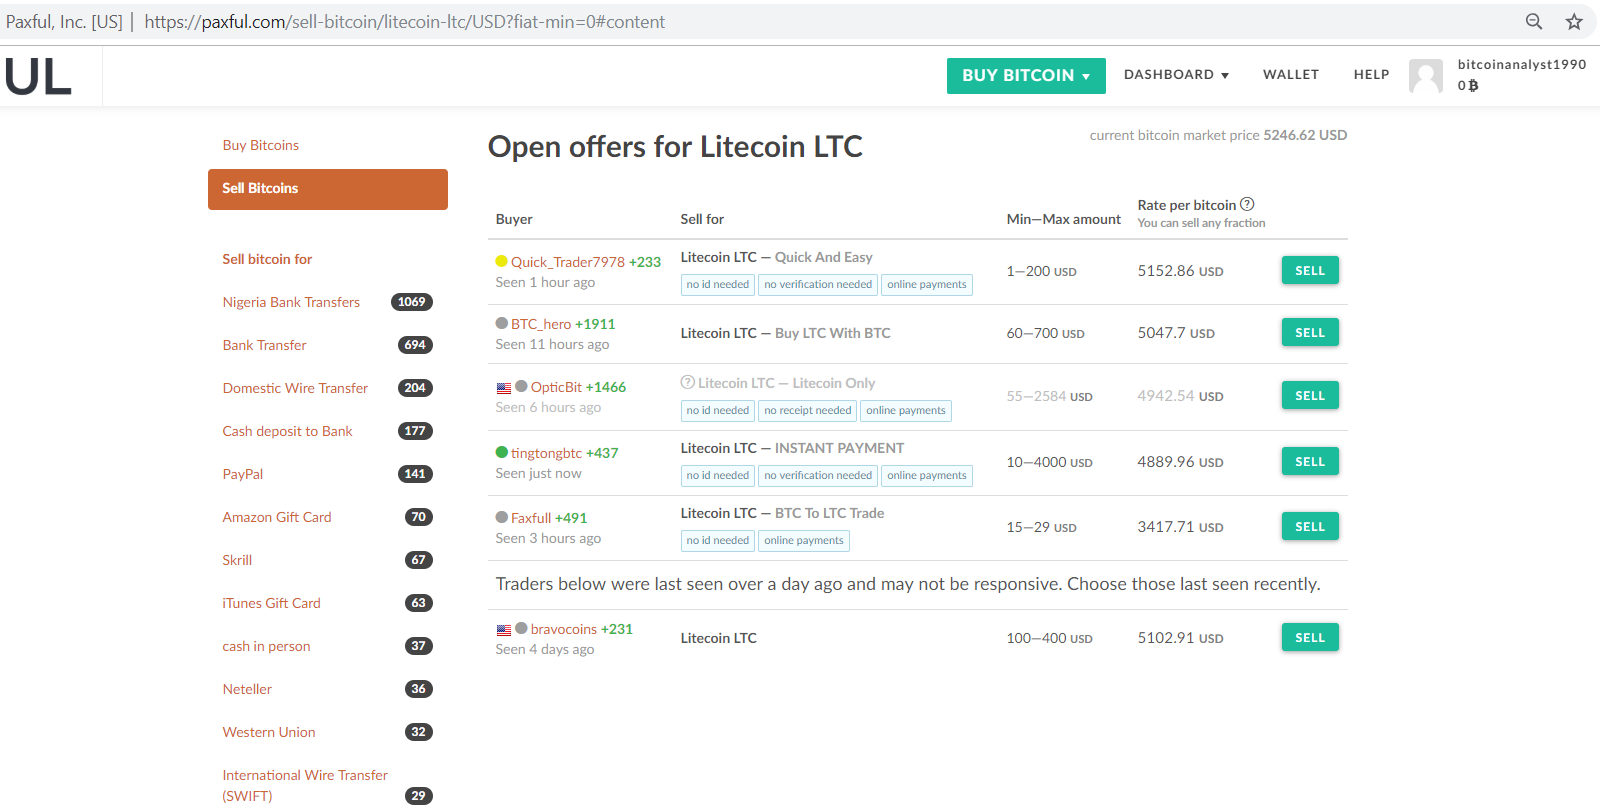 Paxful open offers for Litecoin LTC page.